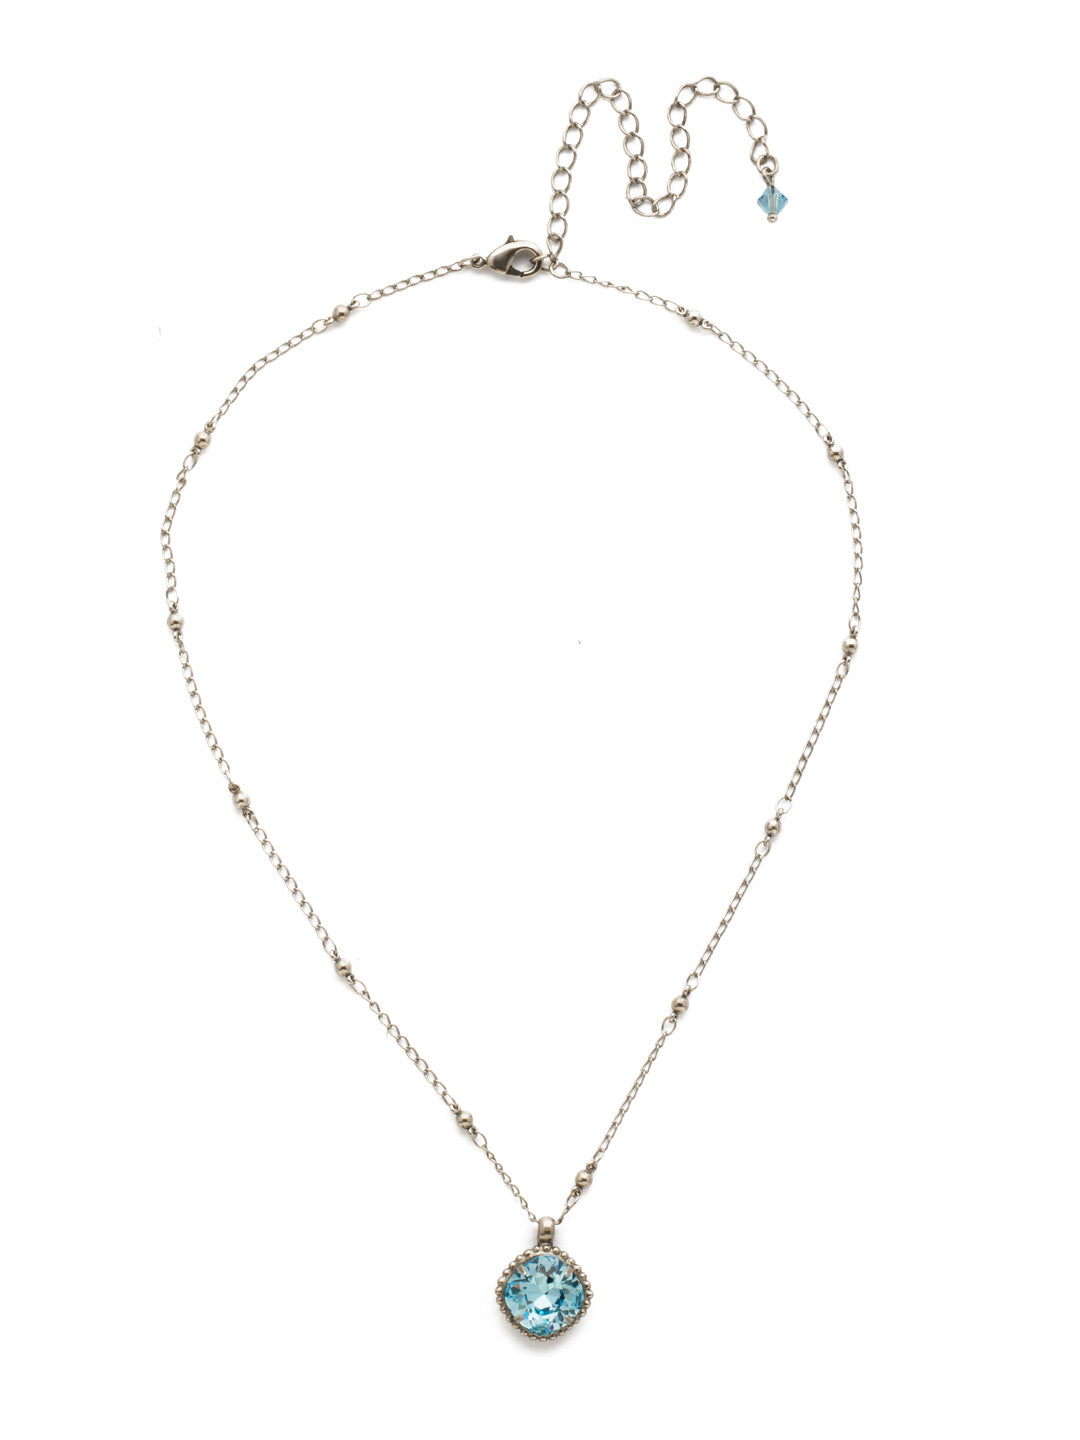 Cushion-Cut Pendant Necklace - NDS50ASAQU